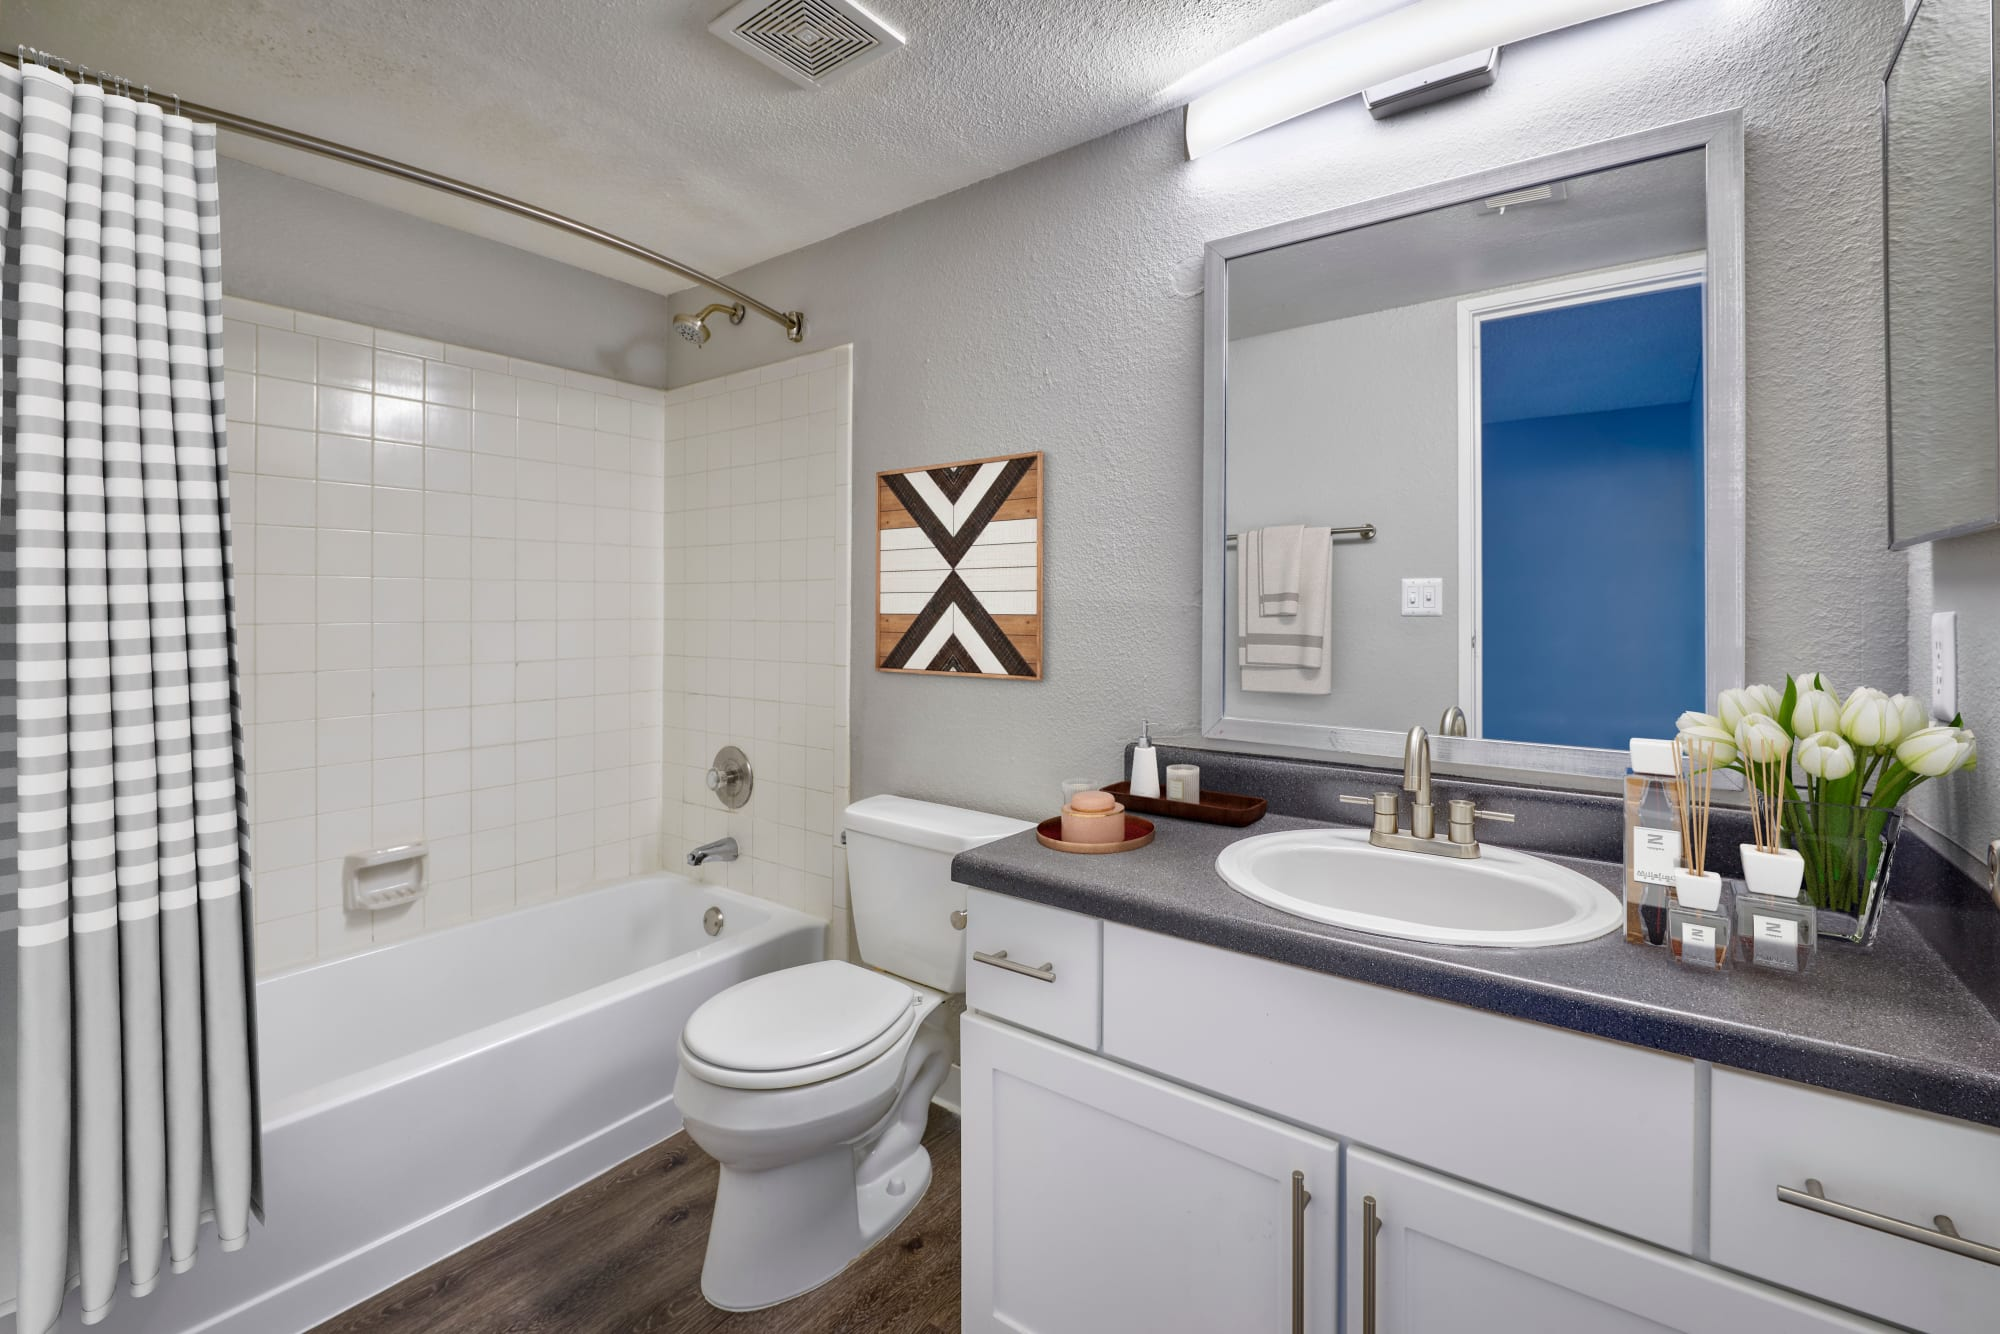 A model bathroom with white cabinets at Alton Green Apartments in Denver, Colorado